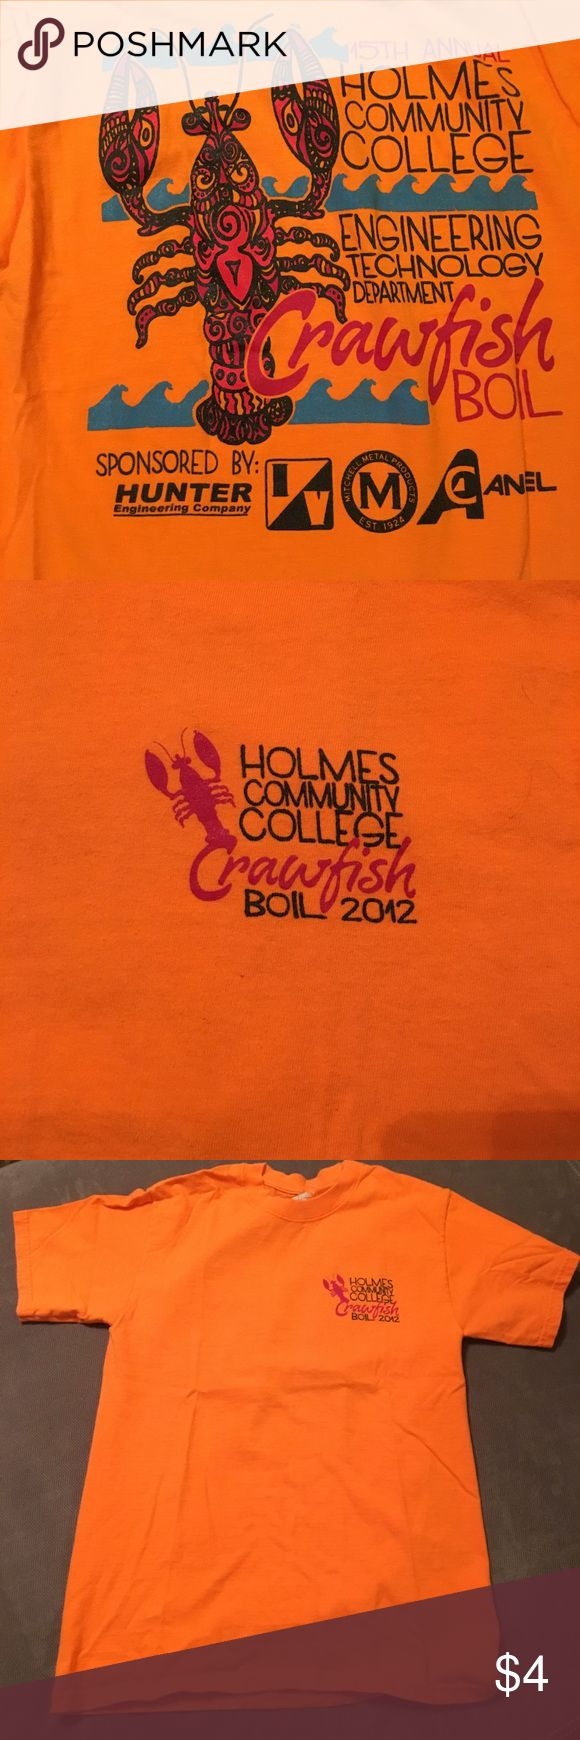 Crawfish boil size small T-shirt Small 34-36 t-shirt Holmes community college crawfish boil 2012. Bundle and ask a price on all T-shirts Hanes Tops Tees - Short Sleeve